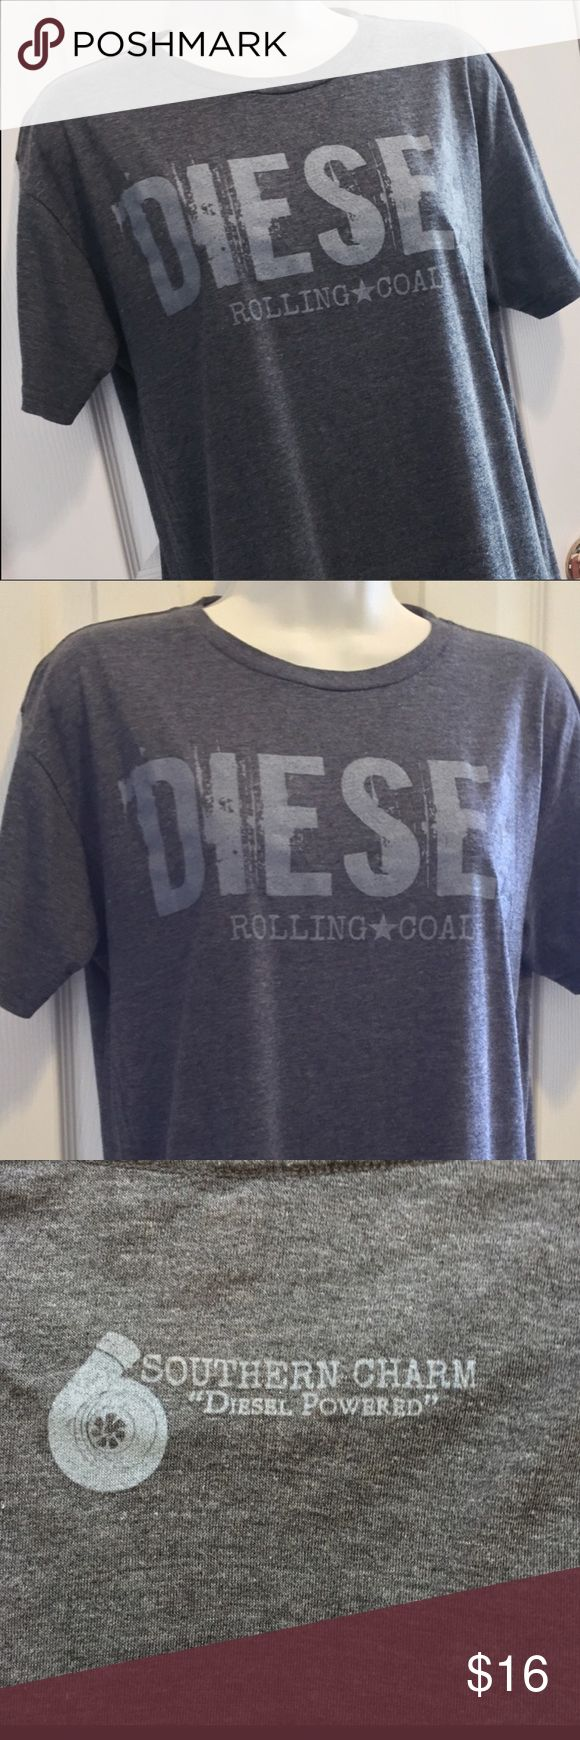 Southern Charm Diesel Tee size Medium Southern Charm Diesel Tee size Medium. Excellent condition only worn once. Bought at the Souther Charm store in Cherokee North Carolina. Southern Charm Tops Tees - Short Sleeve